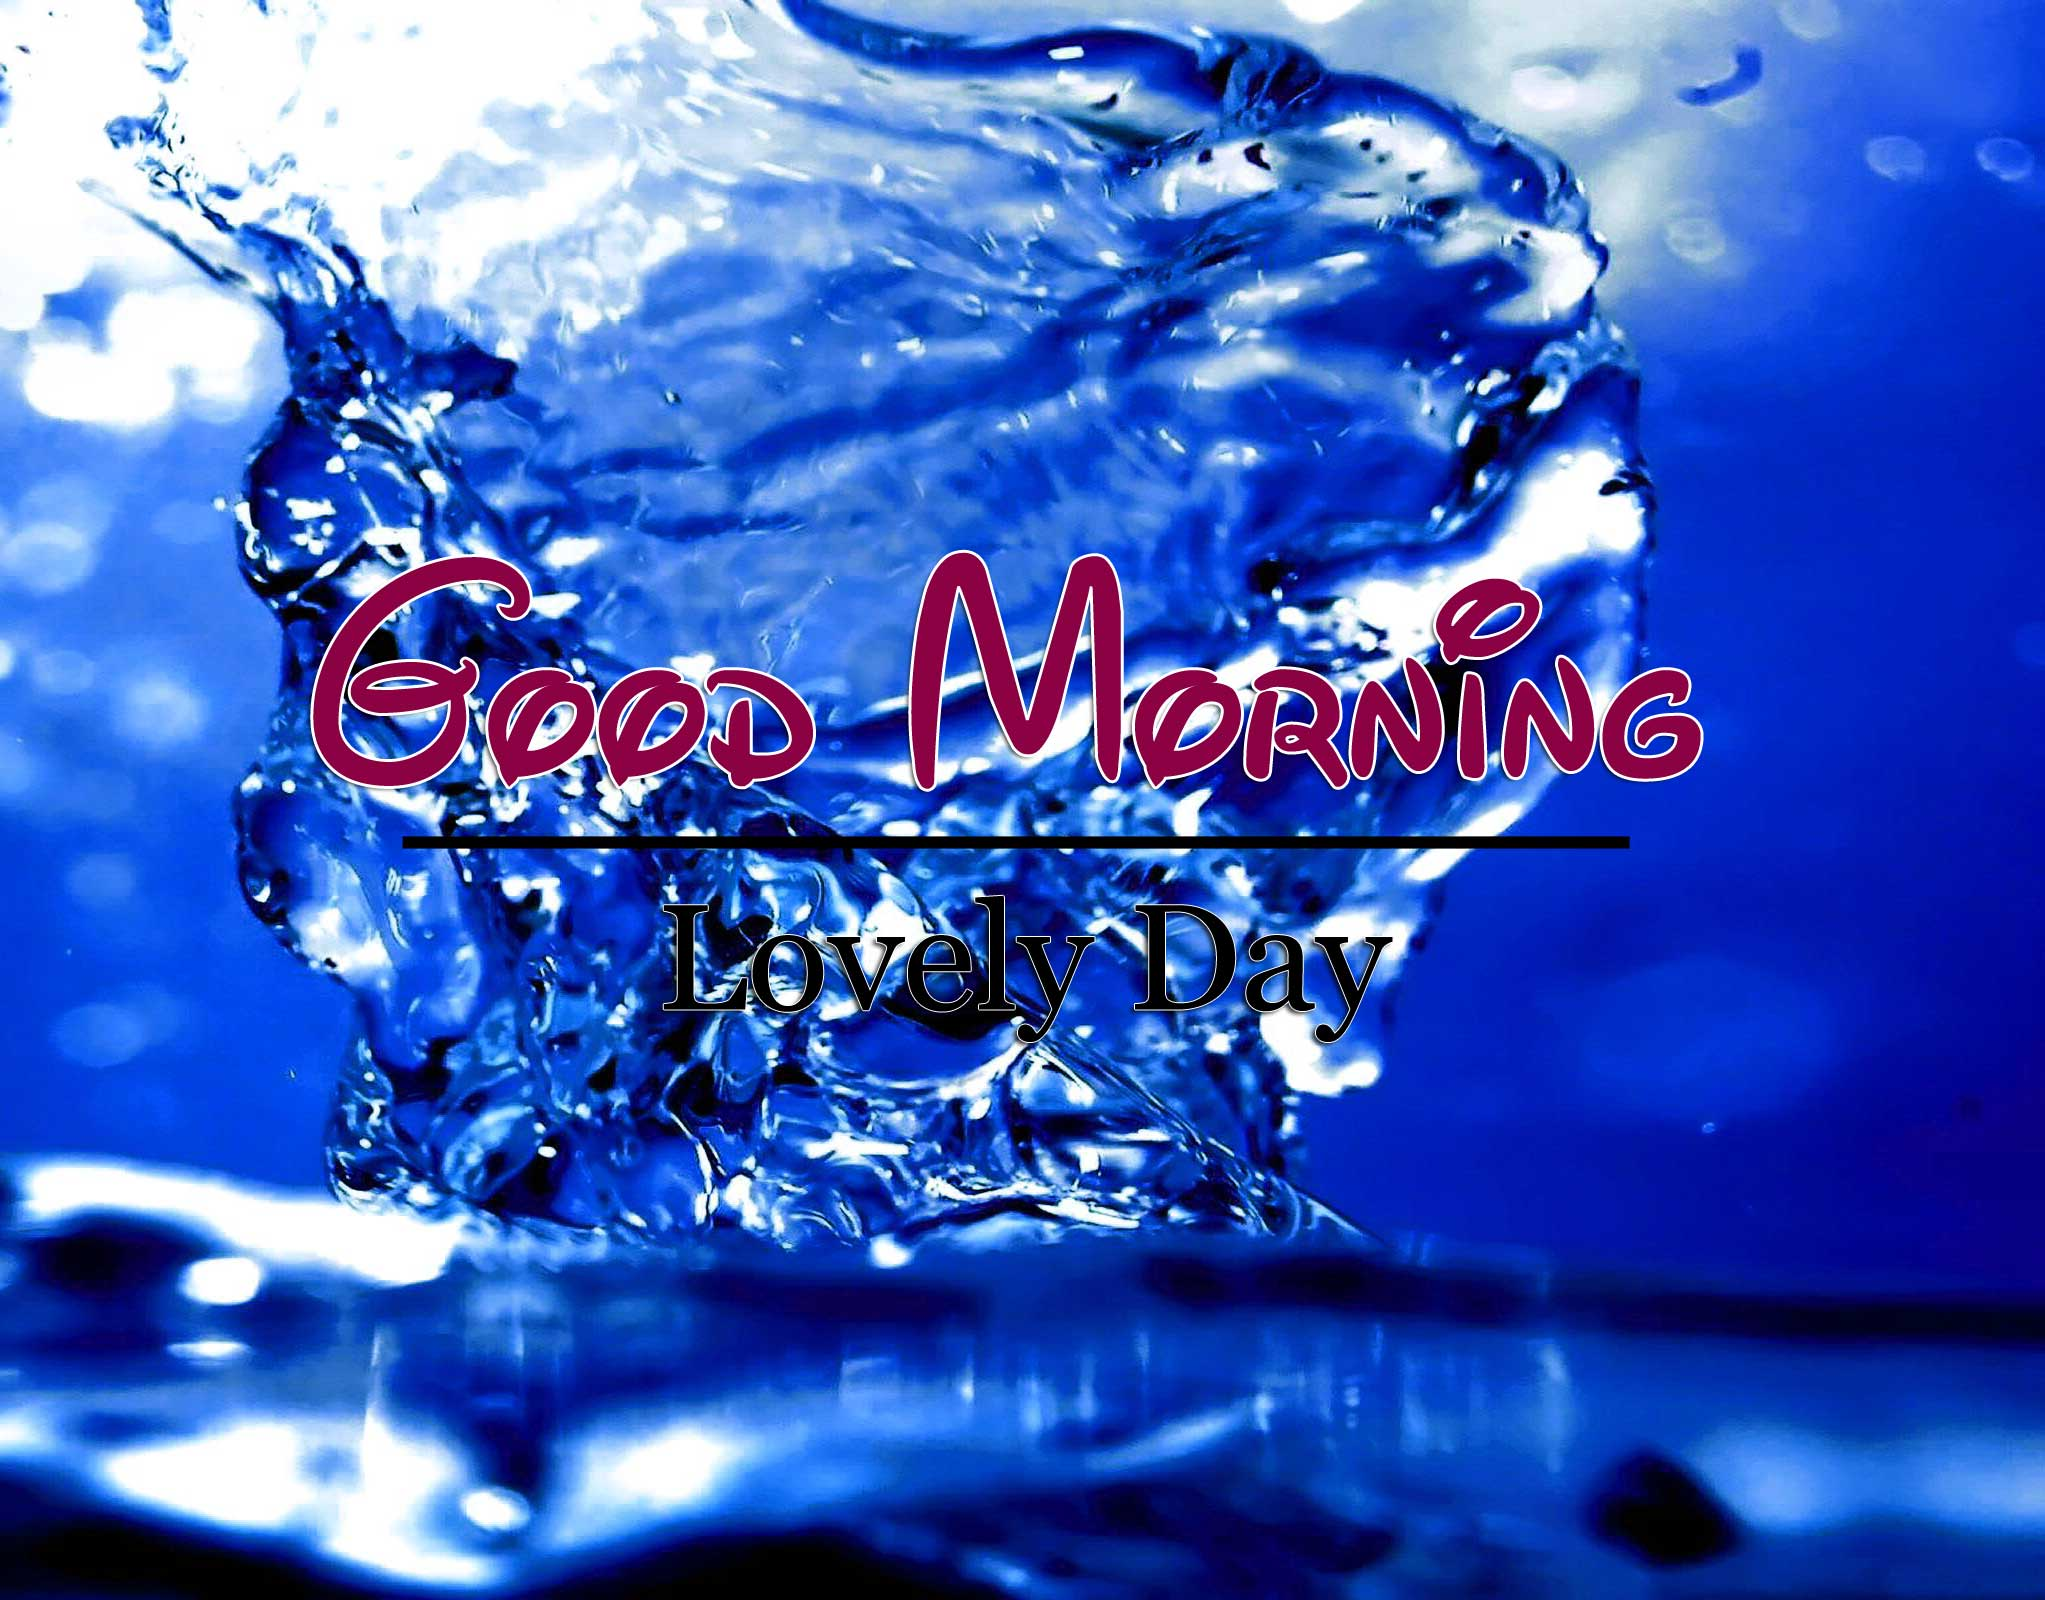 New Good Morning Pictures 2